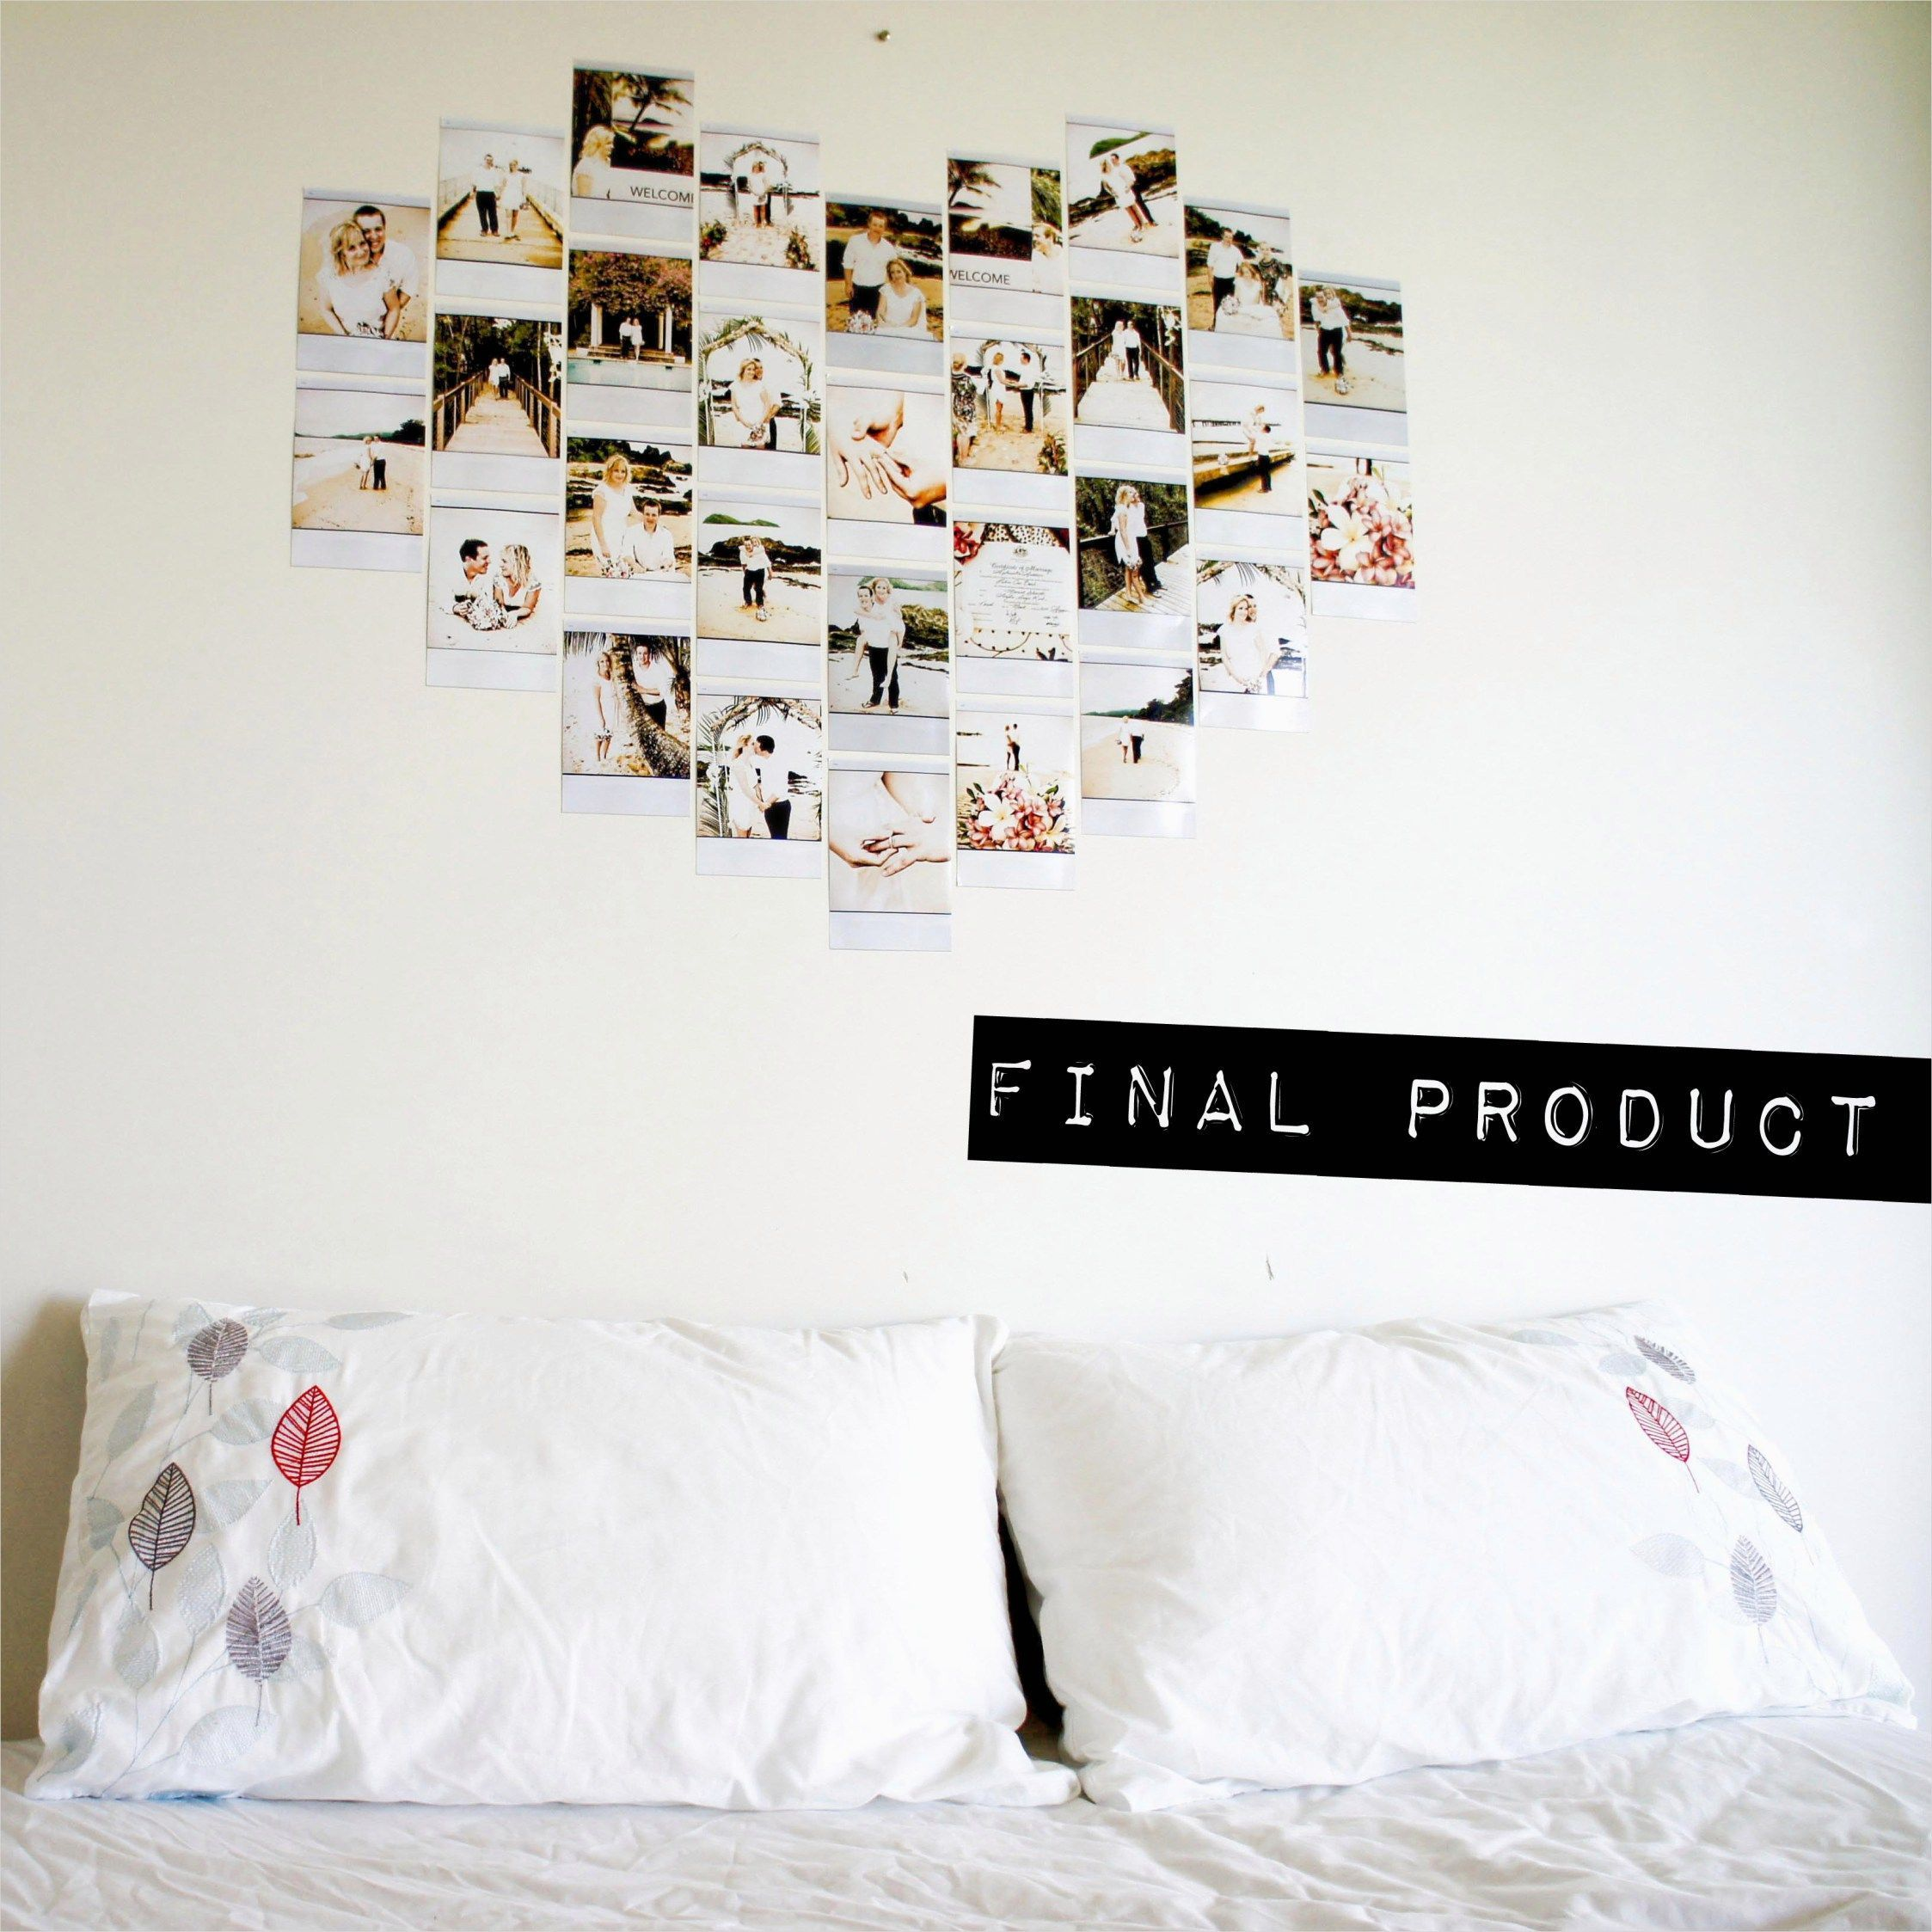 Creative 40 Diy Bedroom Wall Decorating Ideas 17 Homemade Wall